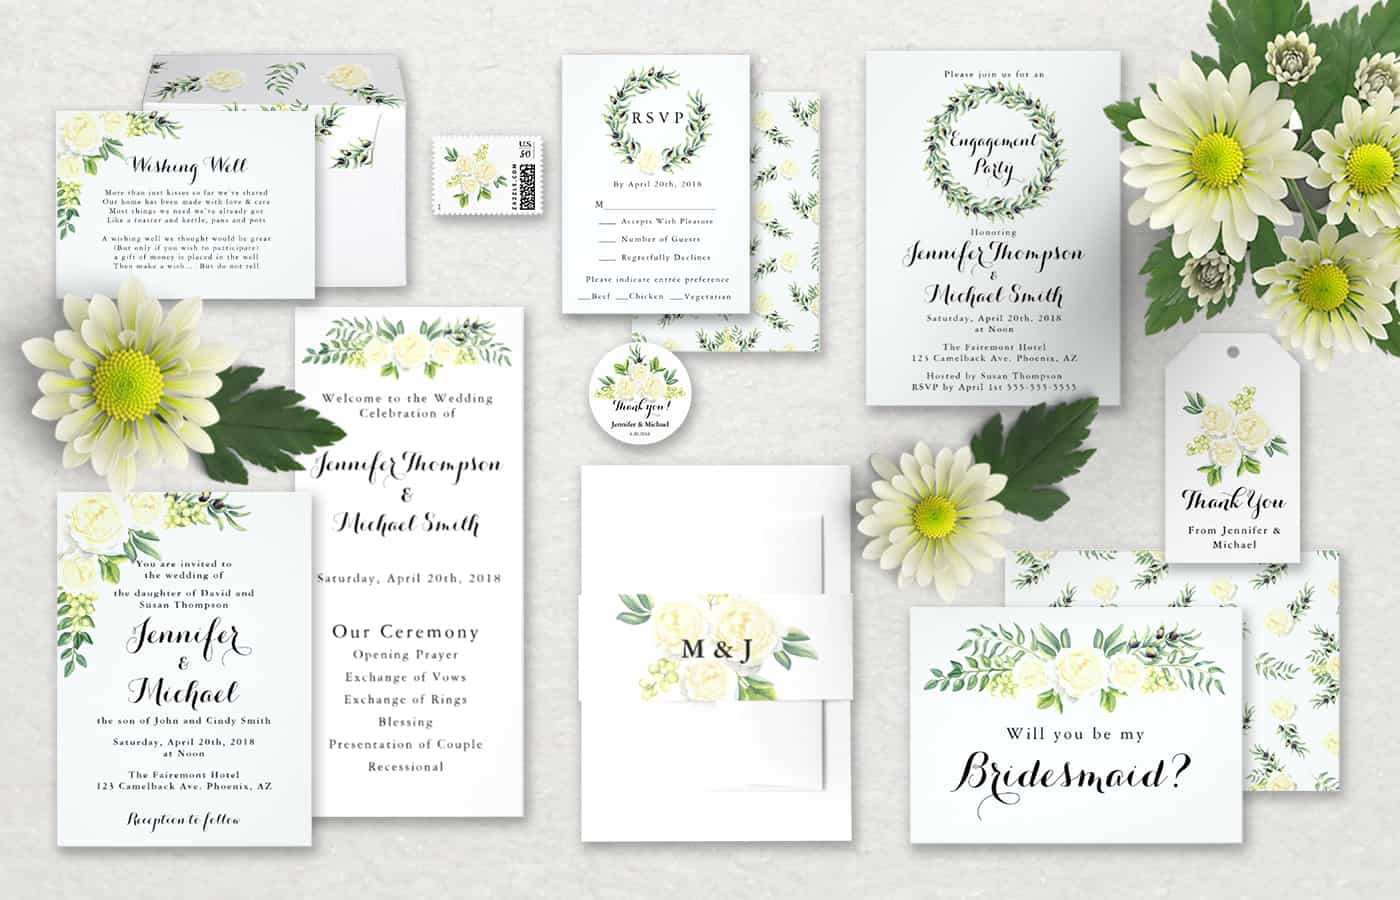 Zazzle Wedding Invitations for Summer- White Roses & Green Leaves ...